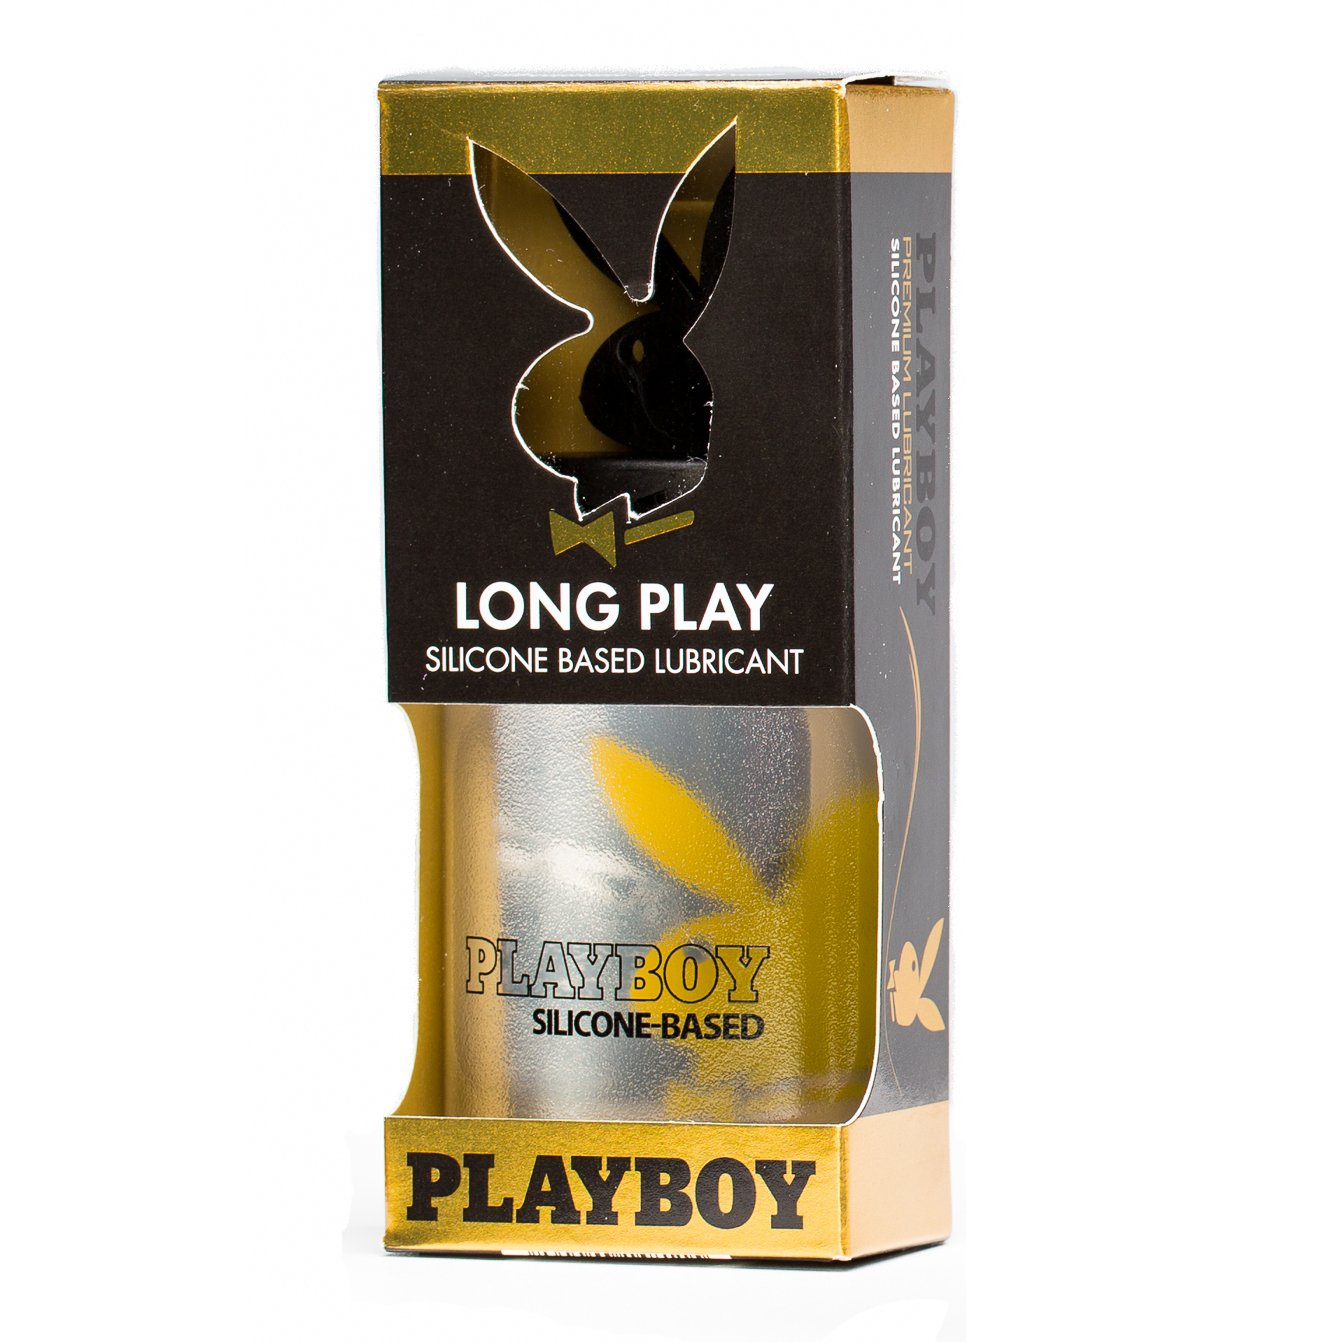 PLAYBOY gel LONG PLAY